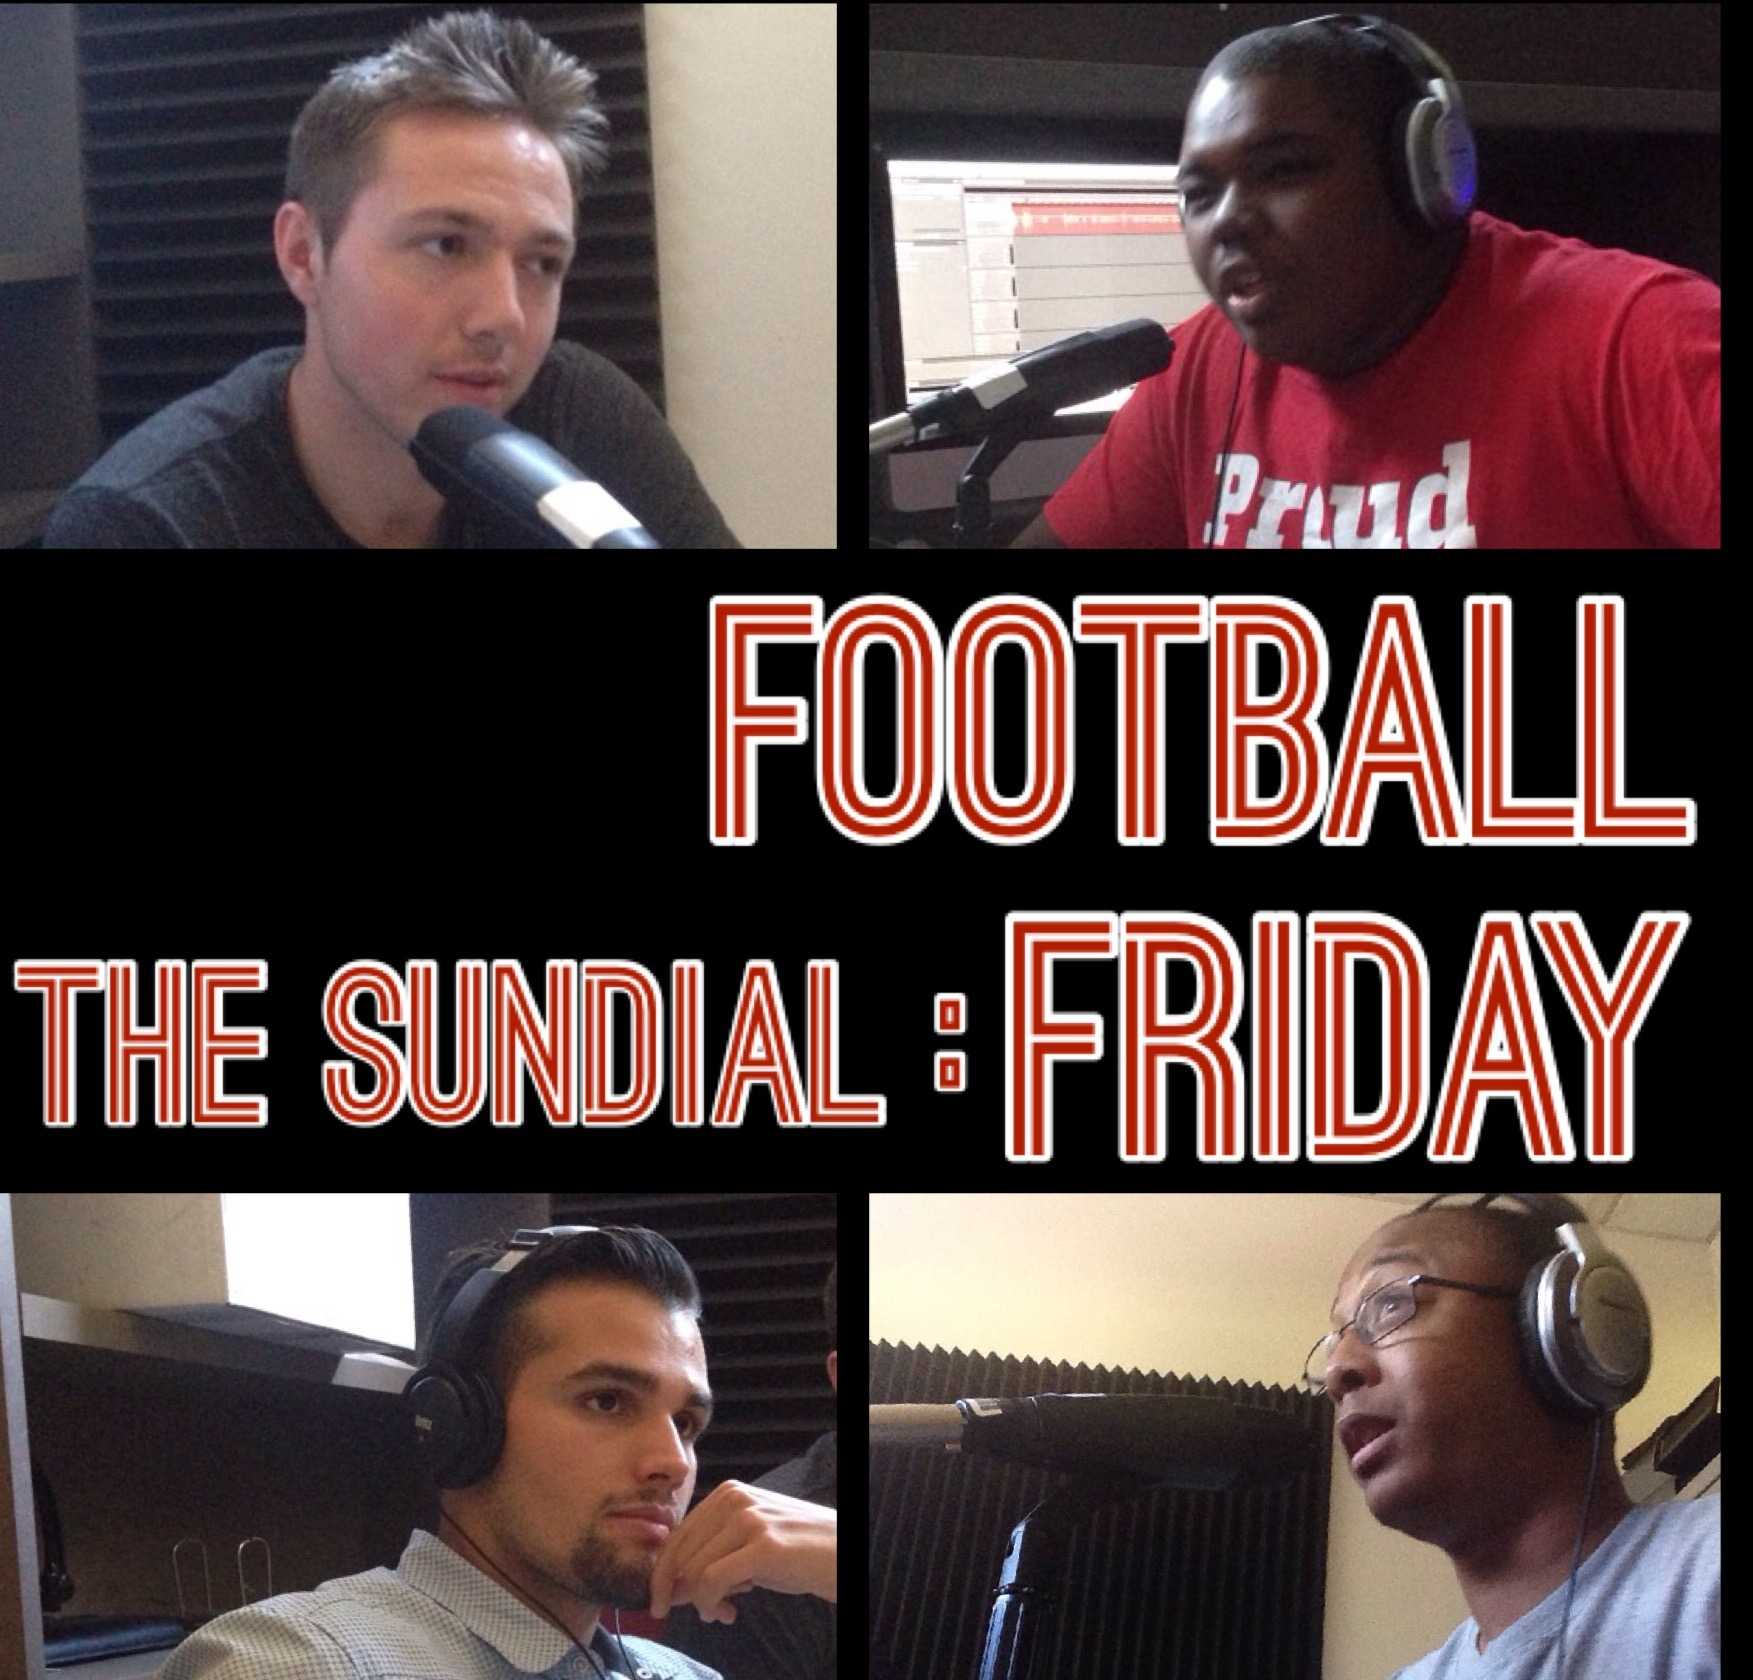 Four podcasters hosting The Sundial: Football Friday.